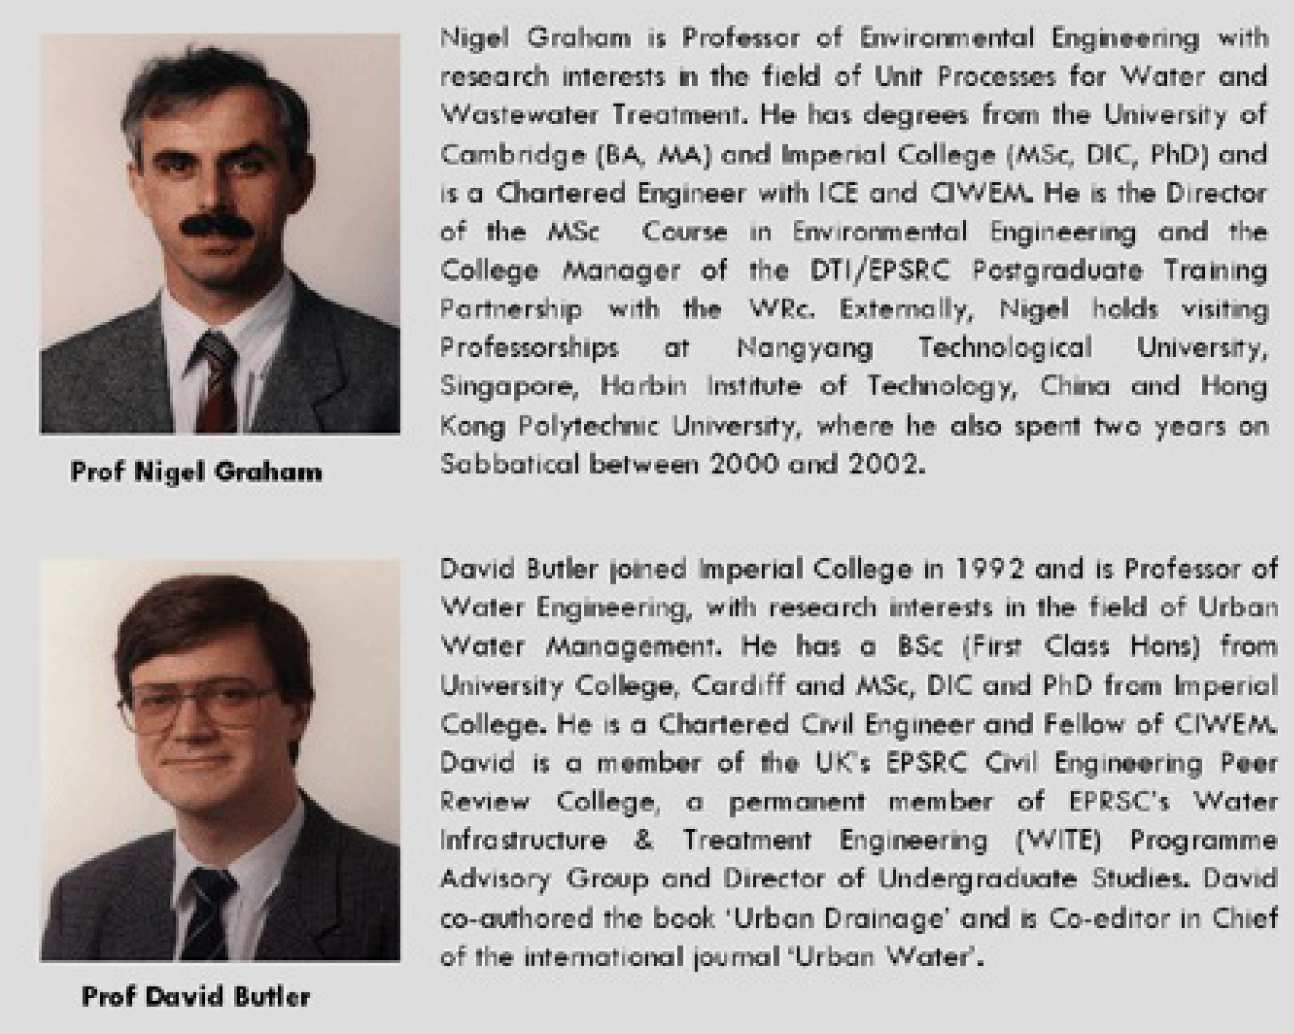 Professors Nigel Graham & David Butler